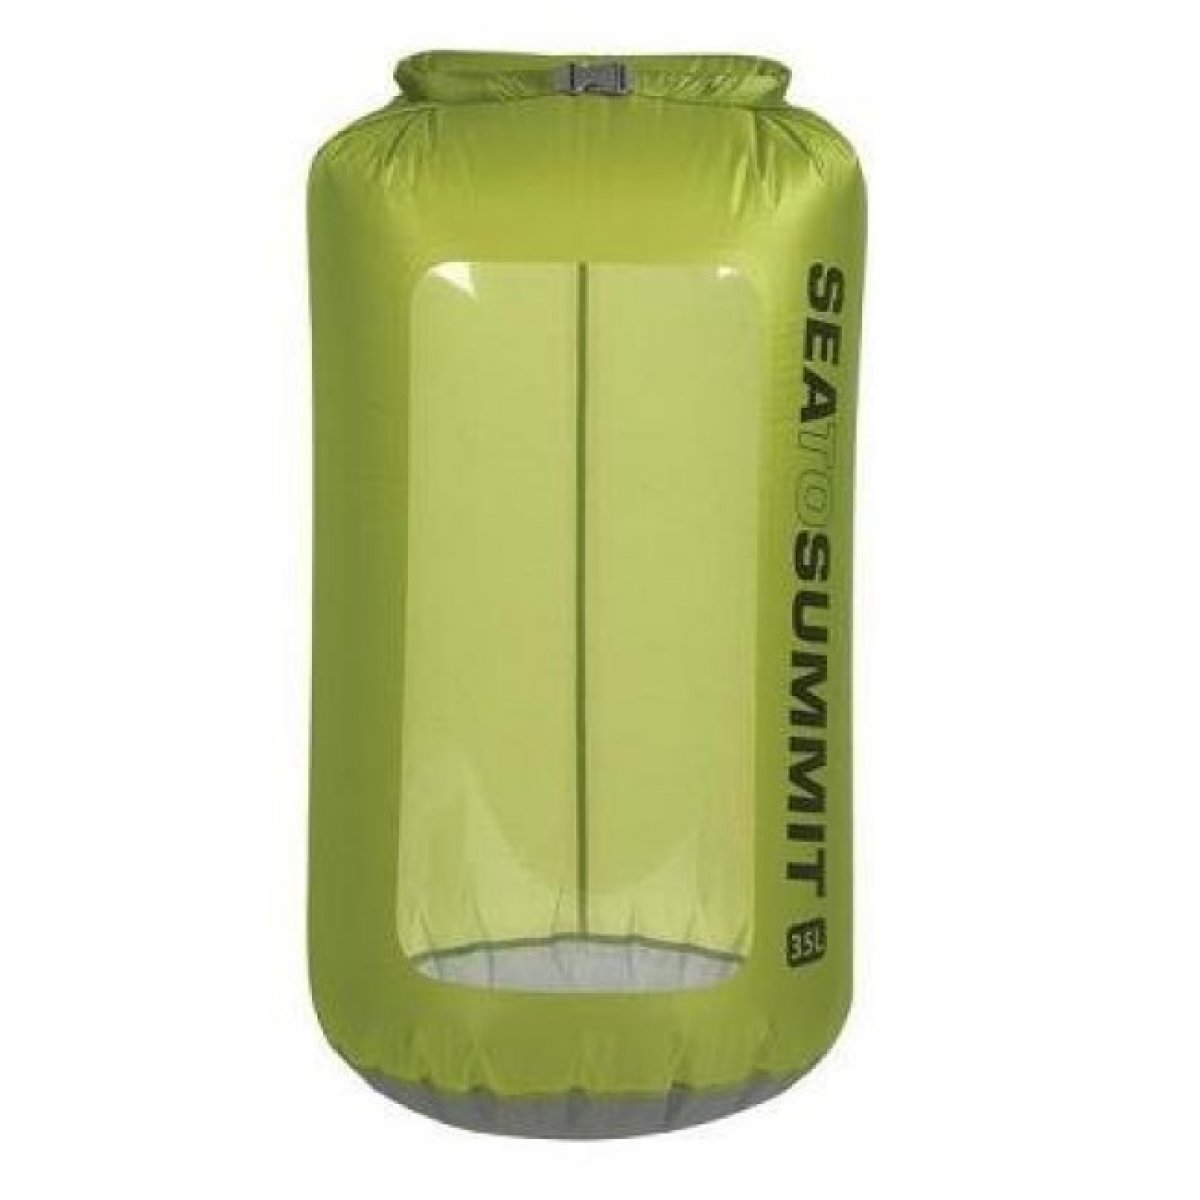 Гермочехол Sea to summit Ultra-Sil View Dry Sack Green, 13 L STS AUVDS13GN